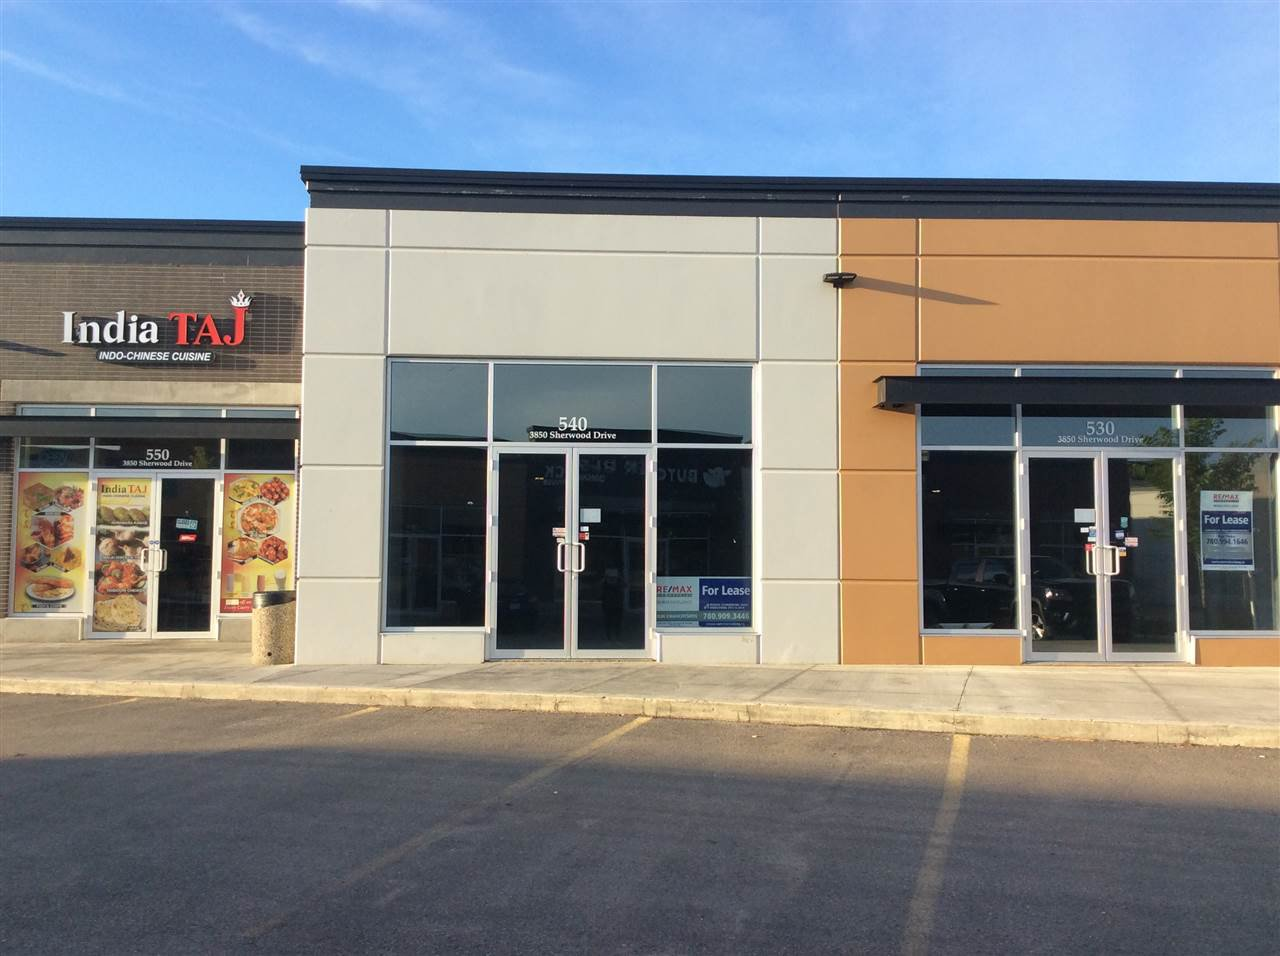 Main Photo: 540 3850 Sherwood  Drive: Sherwood Park Retail for sale or lease : MLS®# E4203419